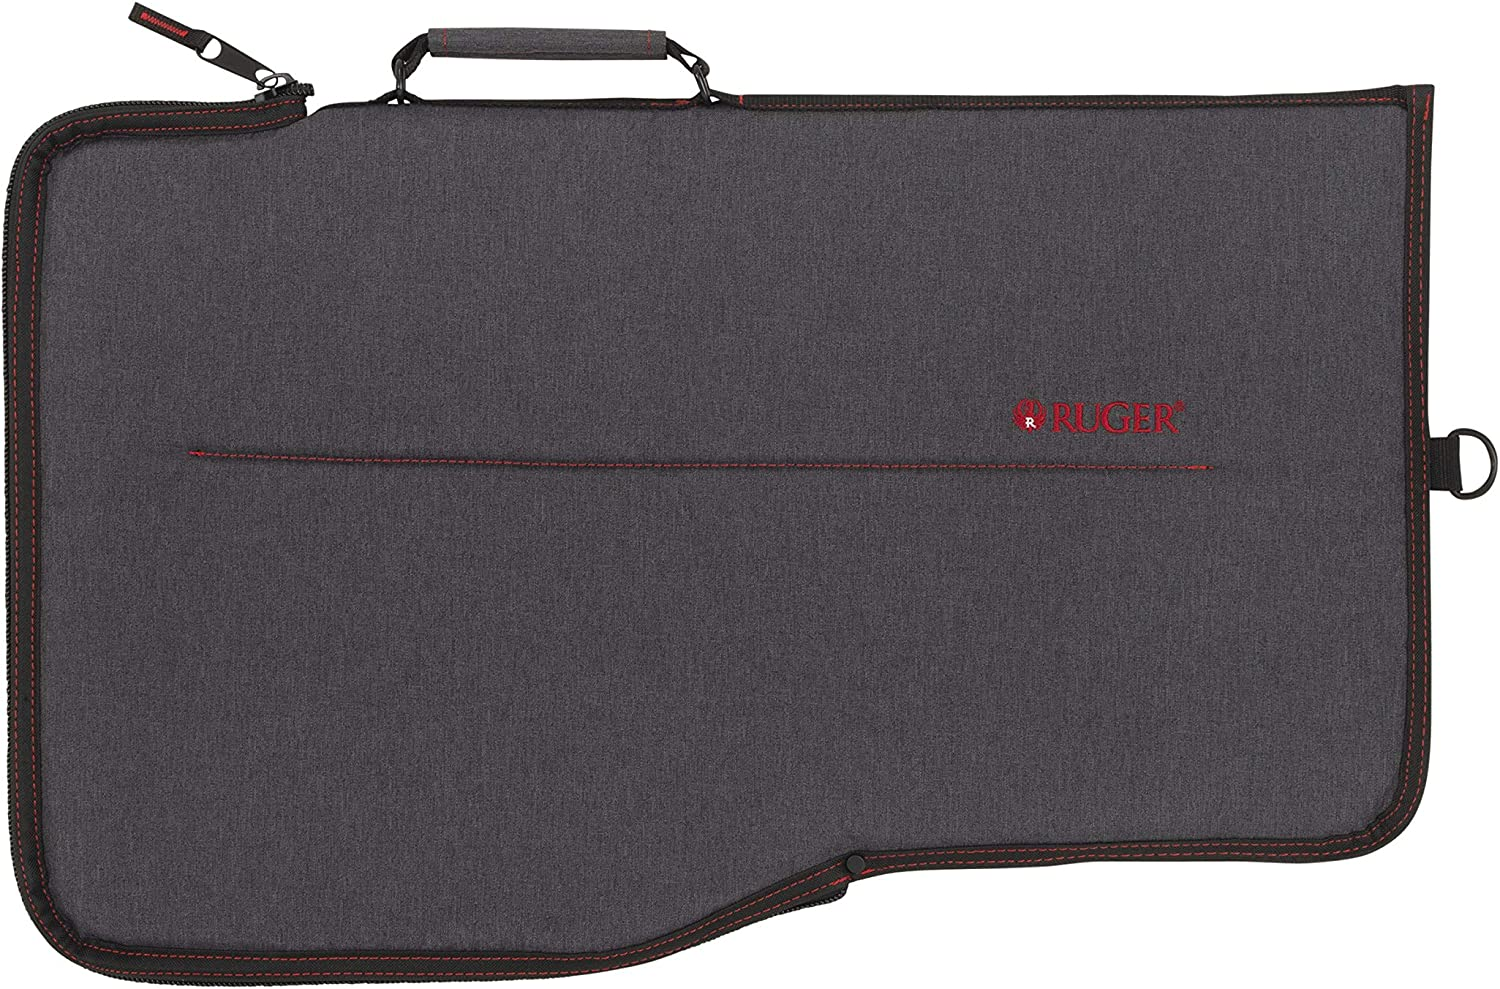 Allen Company Ruger Blackwater Takedown Challenge the lowest price of Japan PC Ca online shop Fits Ruger's Case